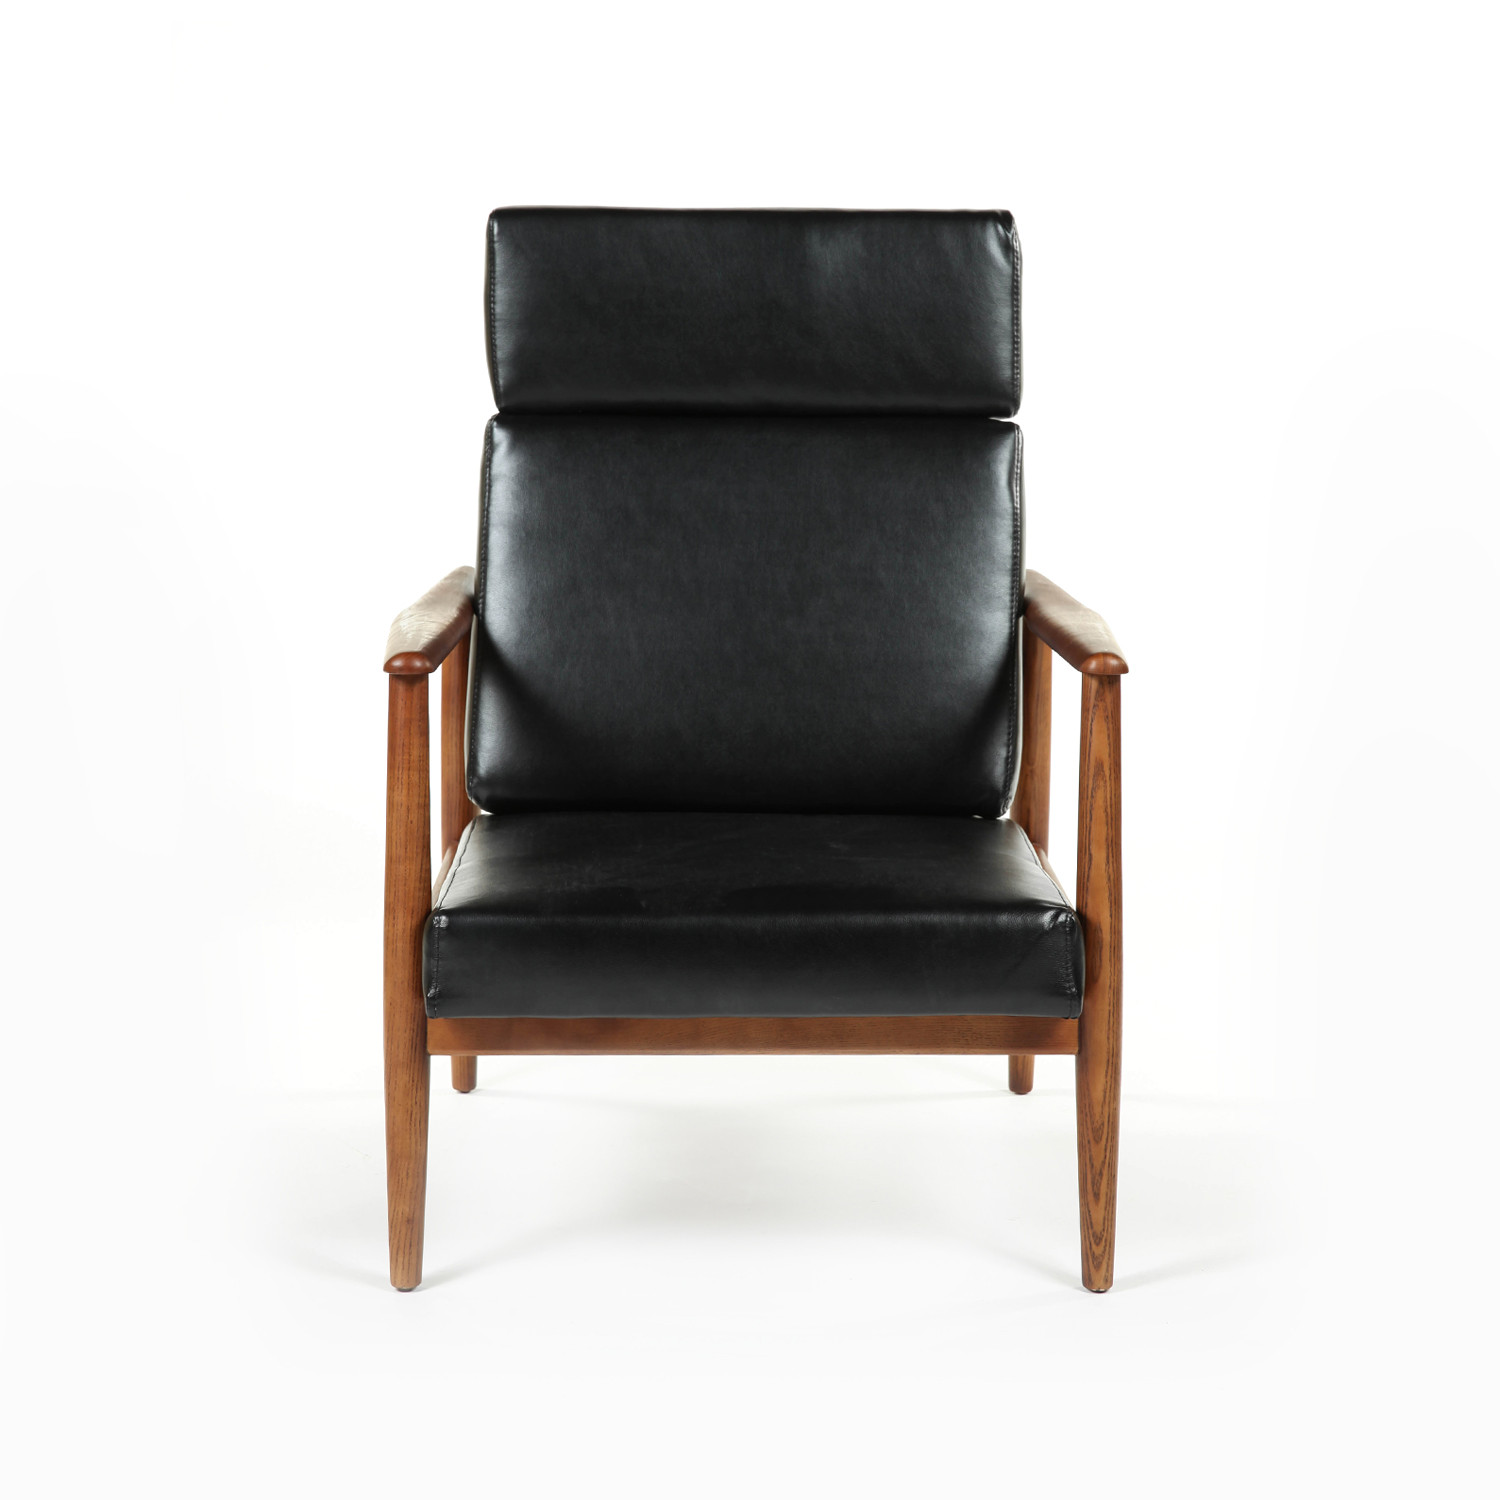 Mid Century Modernist High Back Or Desk Chair W New: The Aalborg High Back Chair (Black)